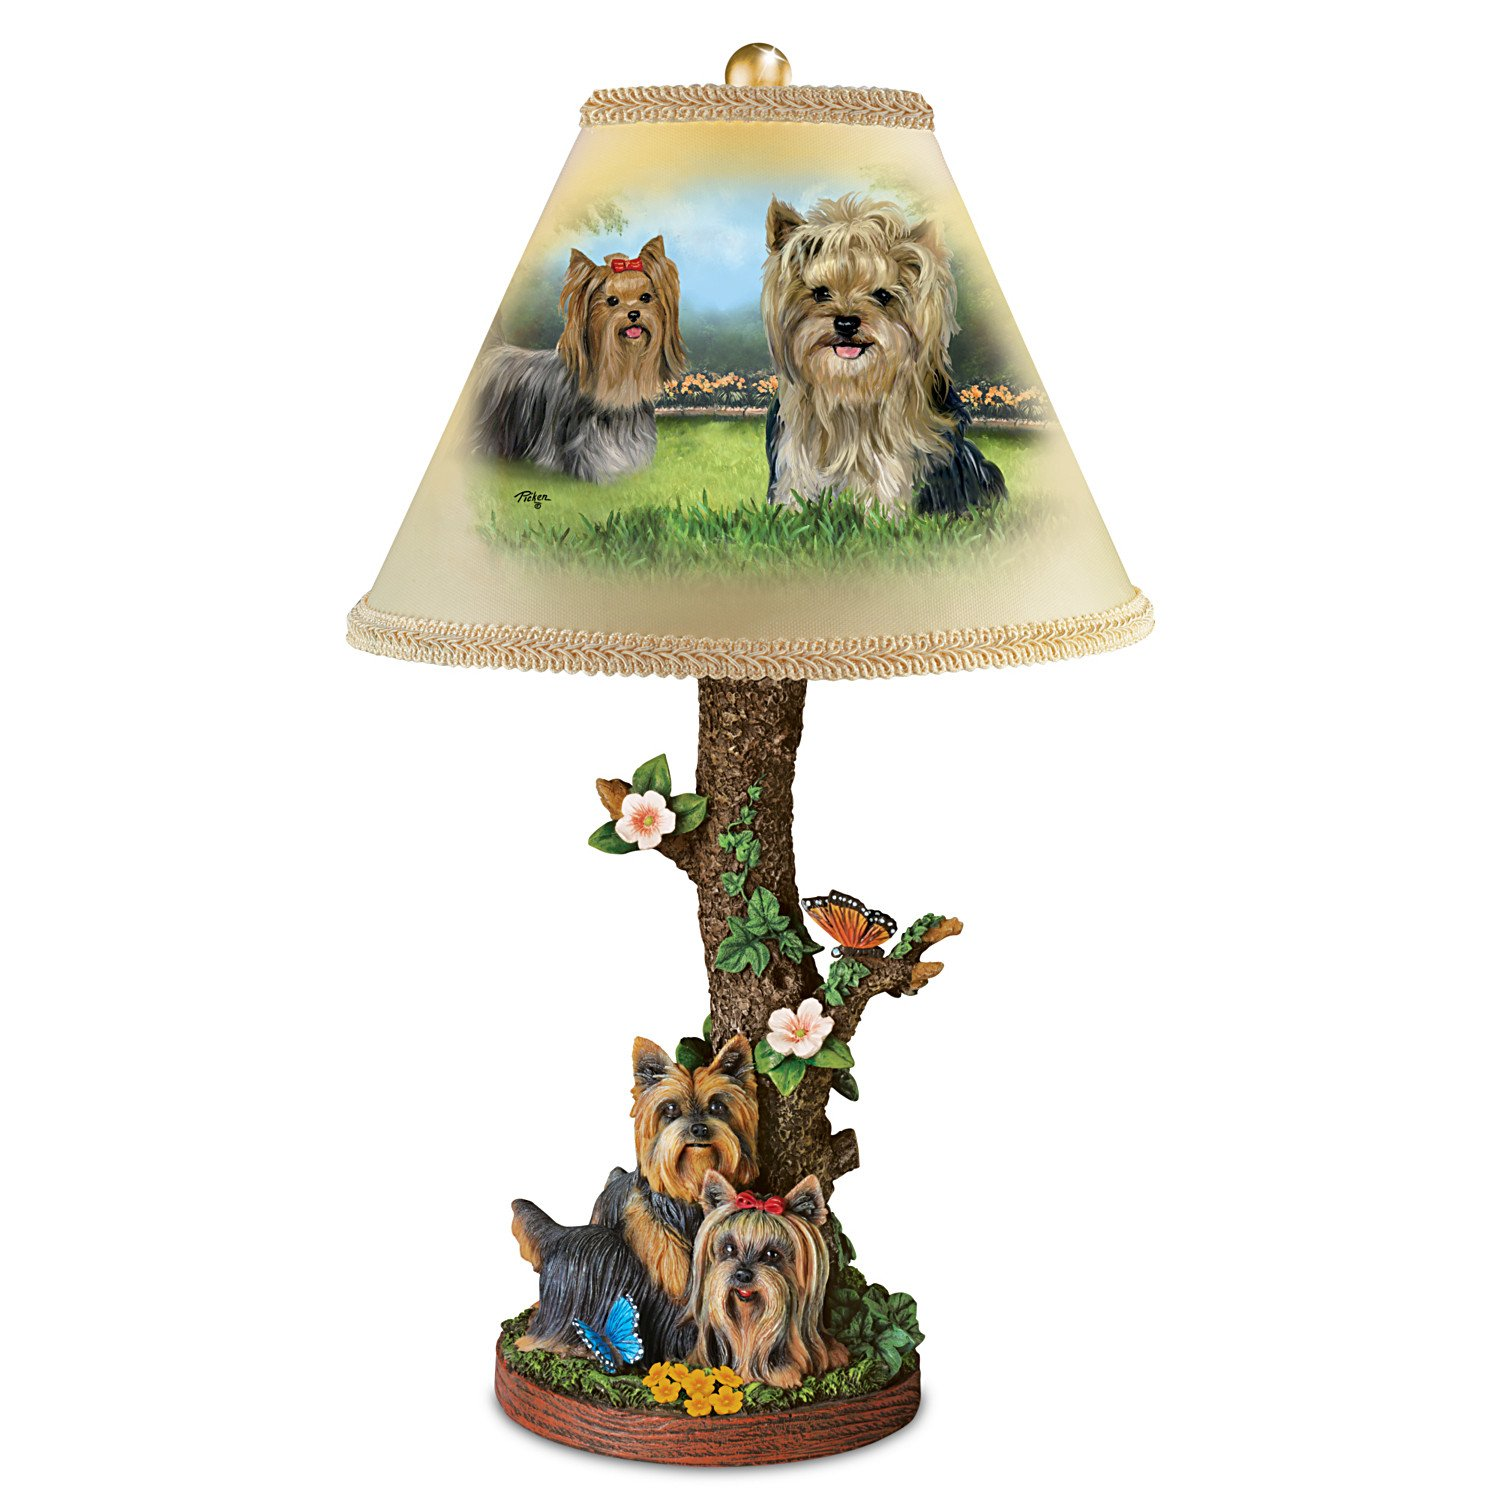 Linda Picken Darling Yorkie Accent Table Lamp With Sculpted Yorkies Base by The Bradford Exchange